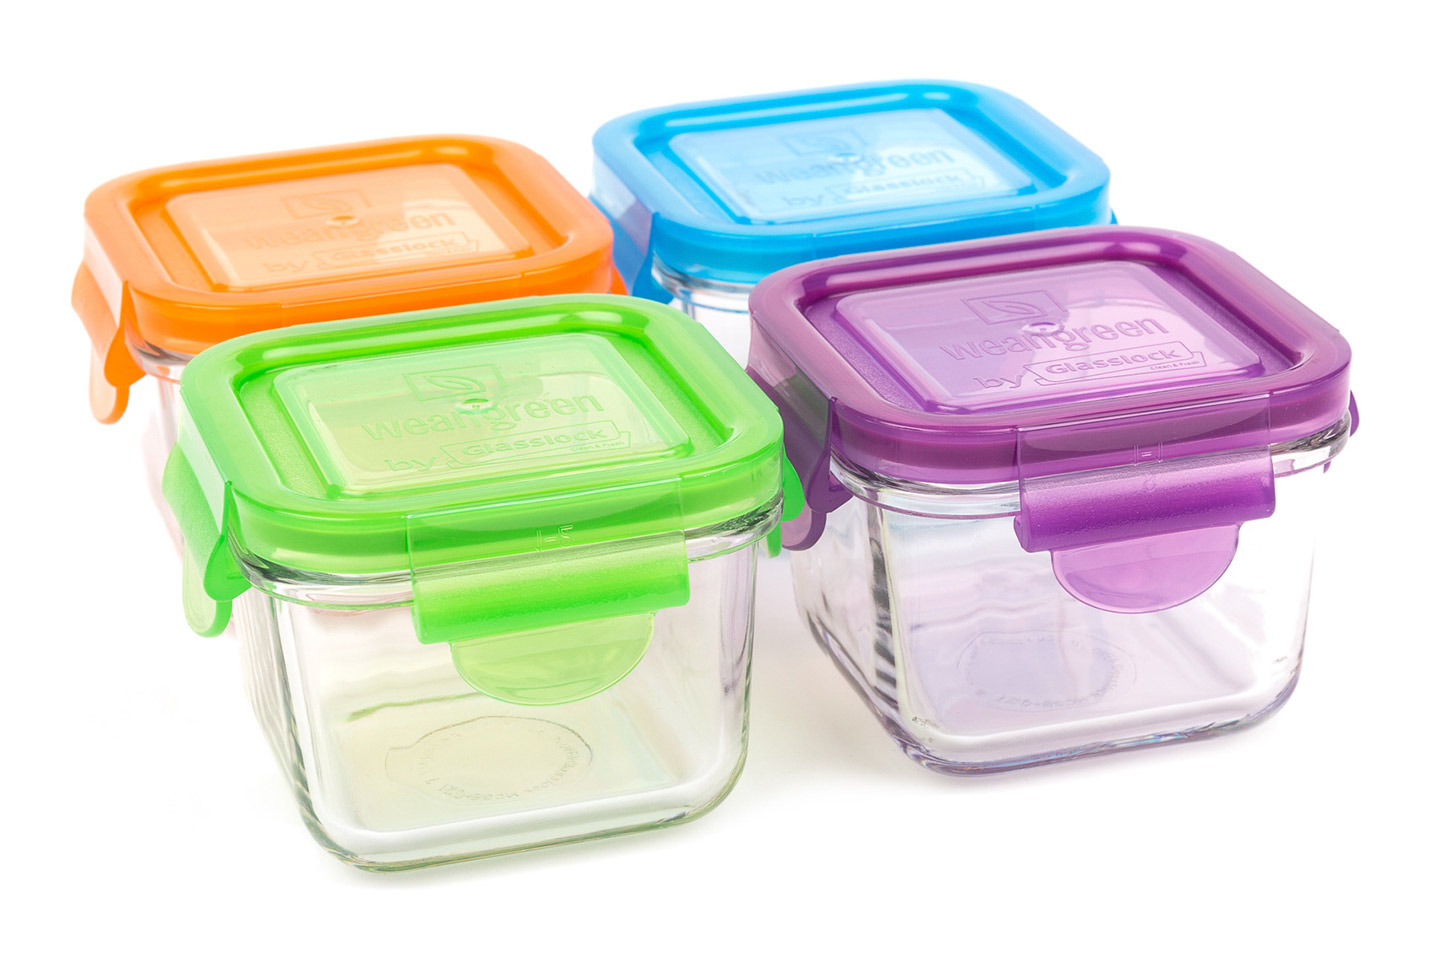 Weangreen snack containers